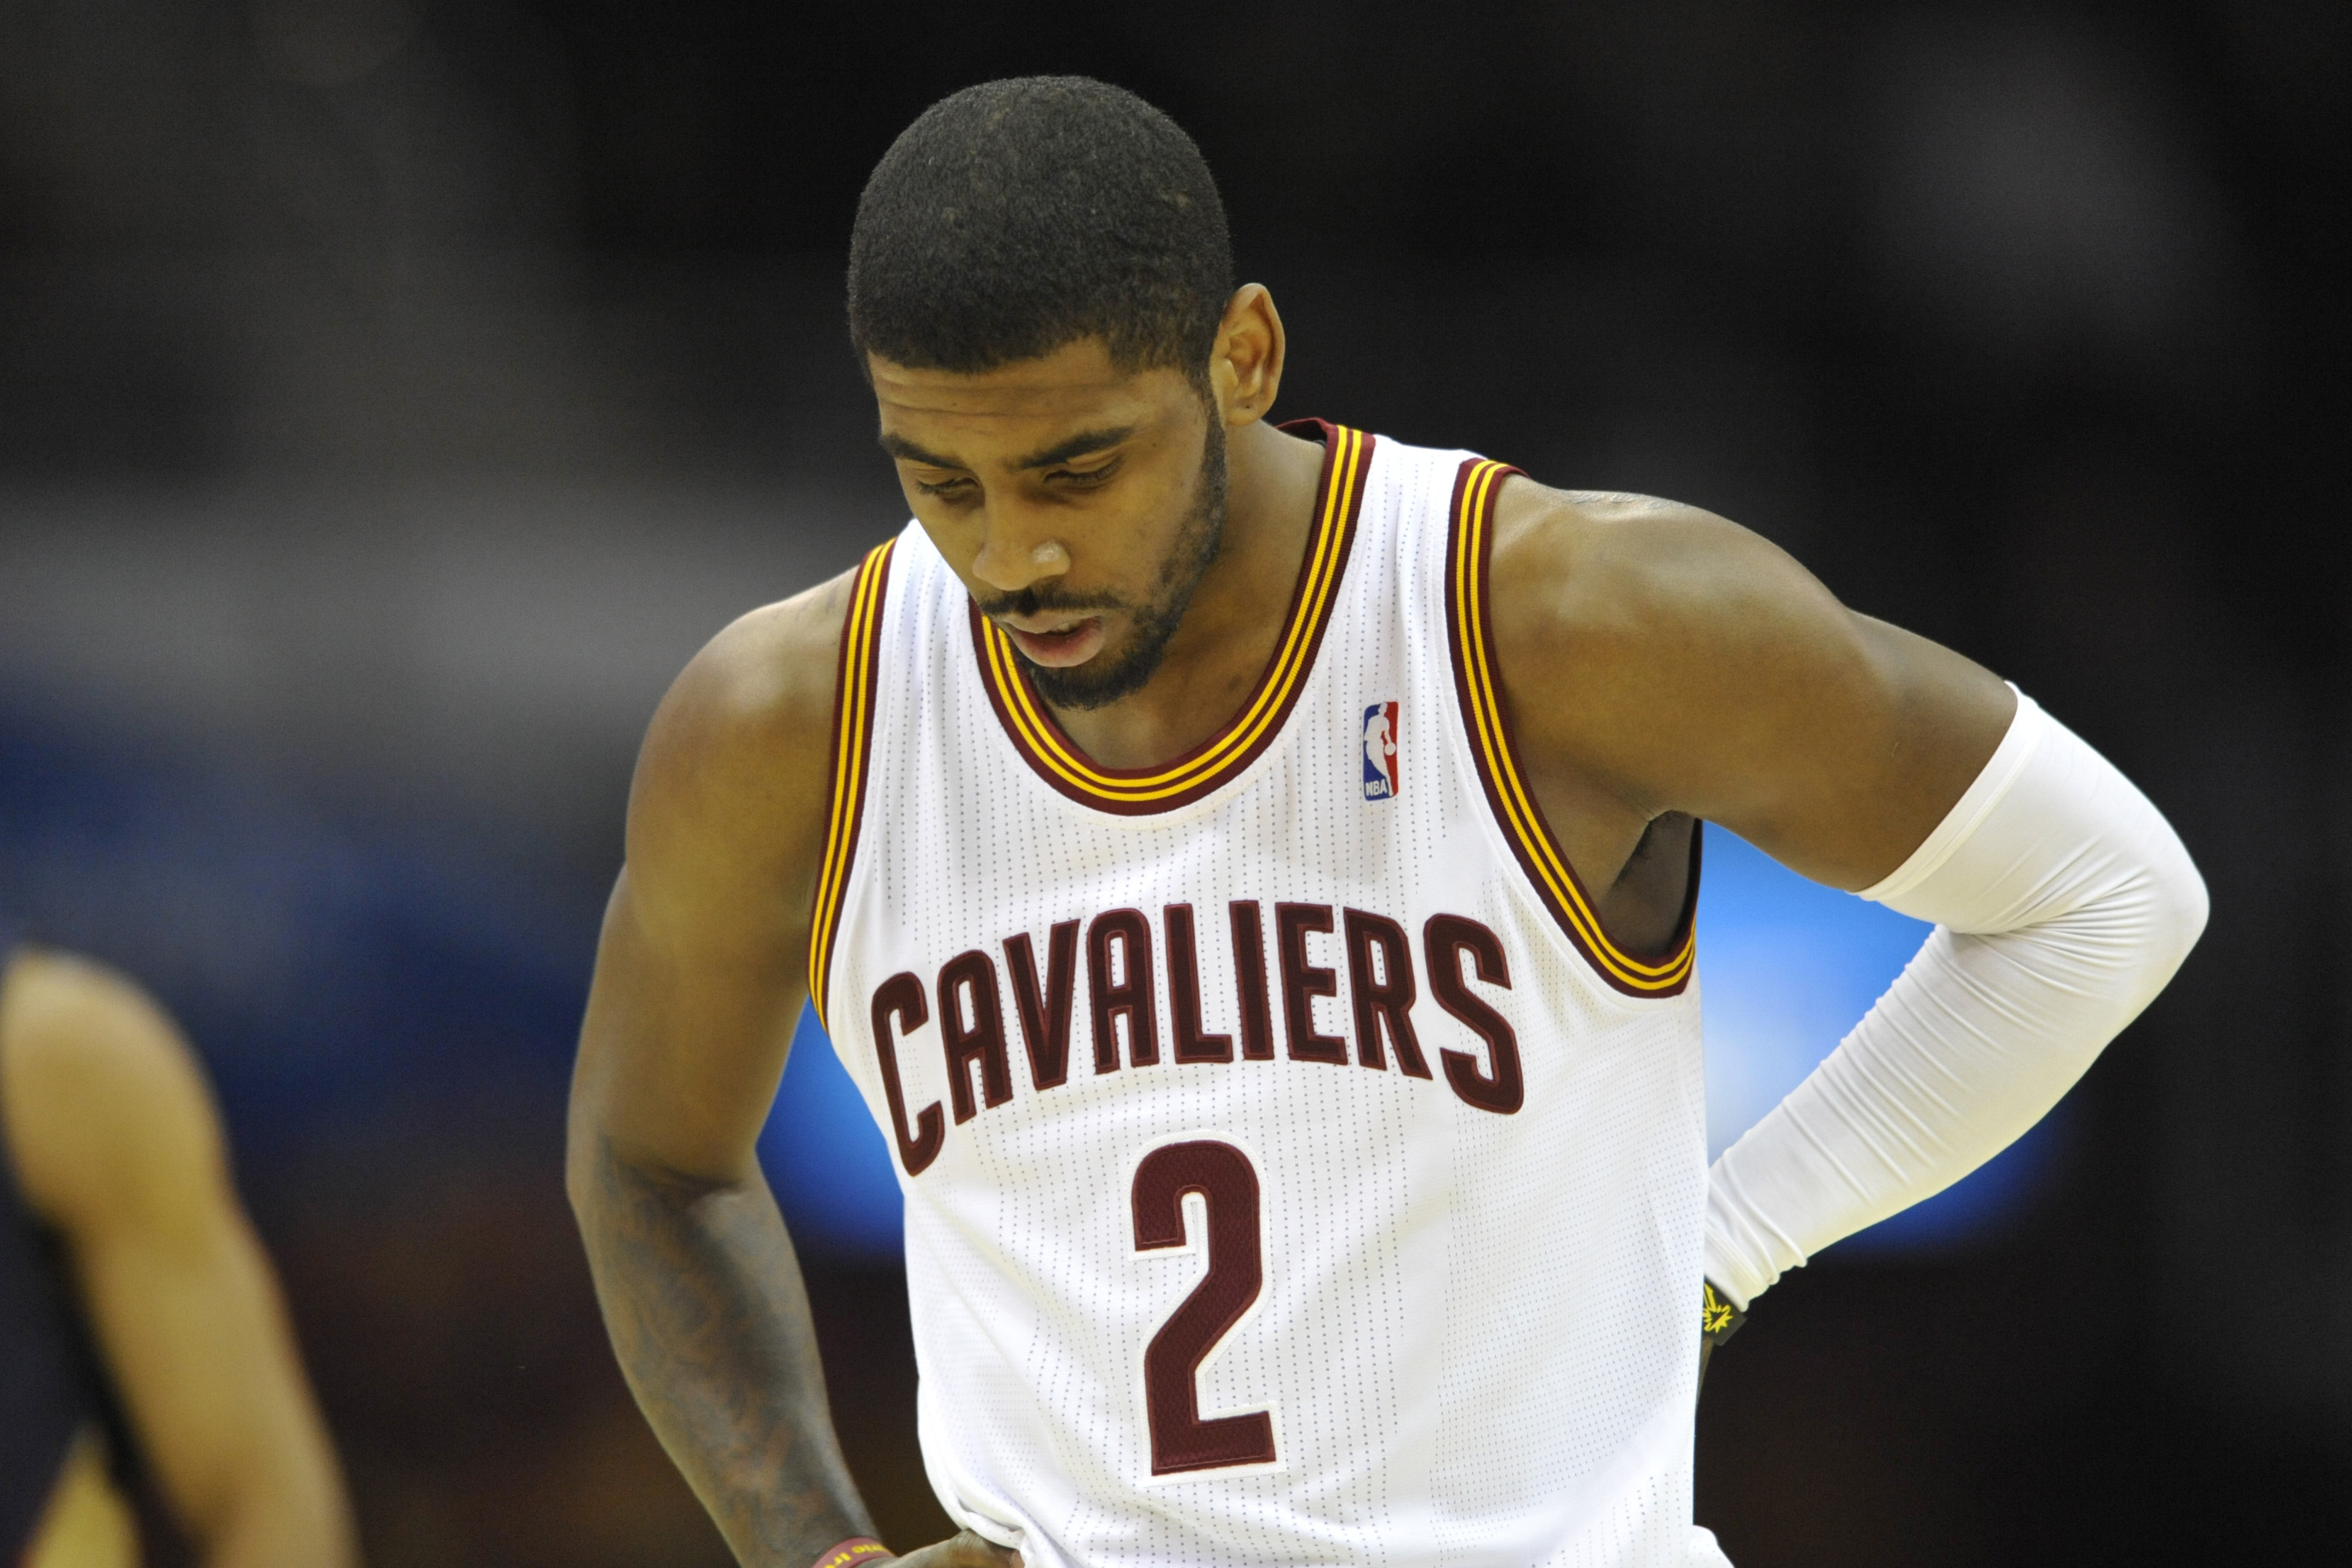 Kyrie Irving privately unhappy with Cavaliers, according to report